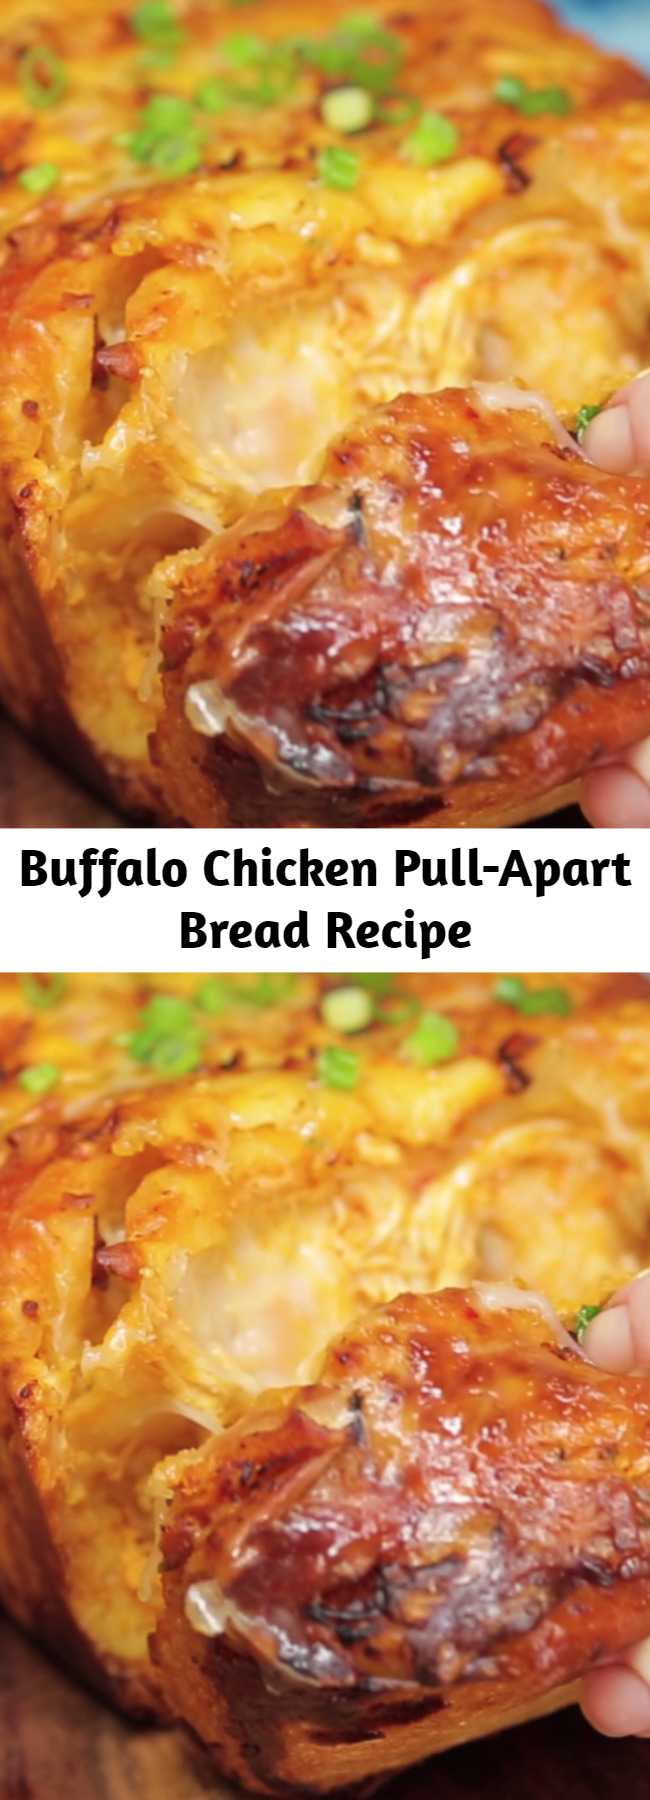 Buffalo Chicken Pull-Apart Bread Recipe - The only way to improve shareable bread is with Buffalo chicken and lots of cheese.